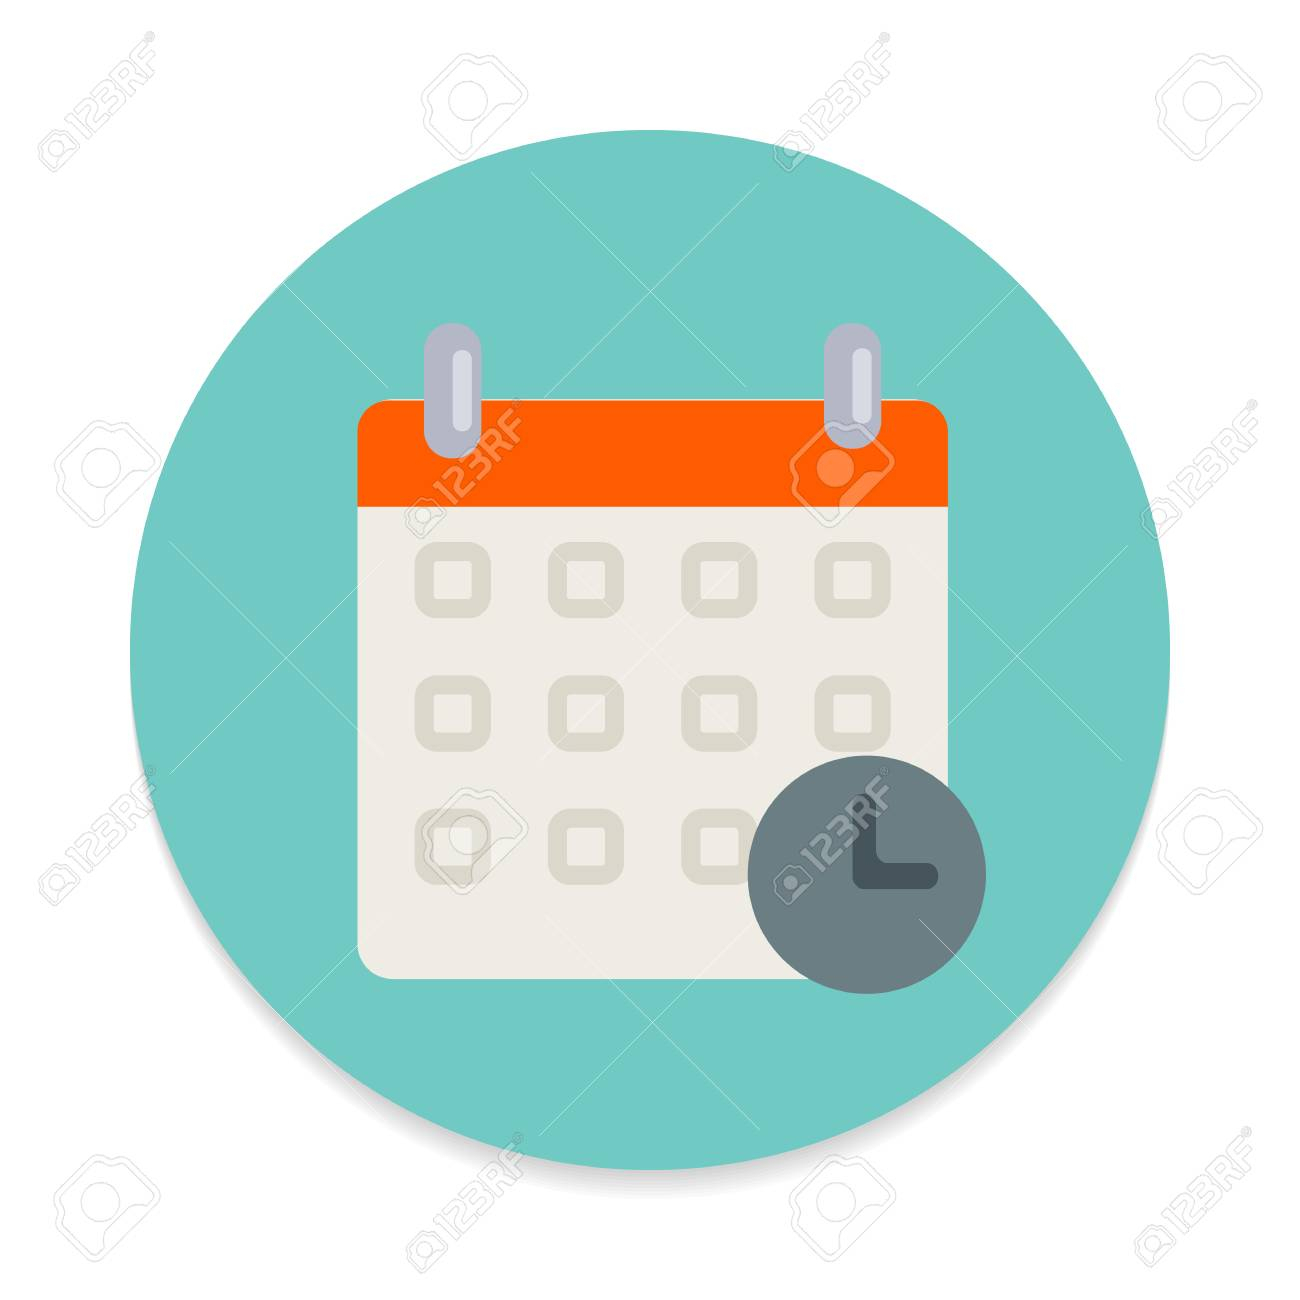 Calendar With Clock Flat Icon. Round Colorful Button, Schedule,.. regarding Calendar Icon Round